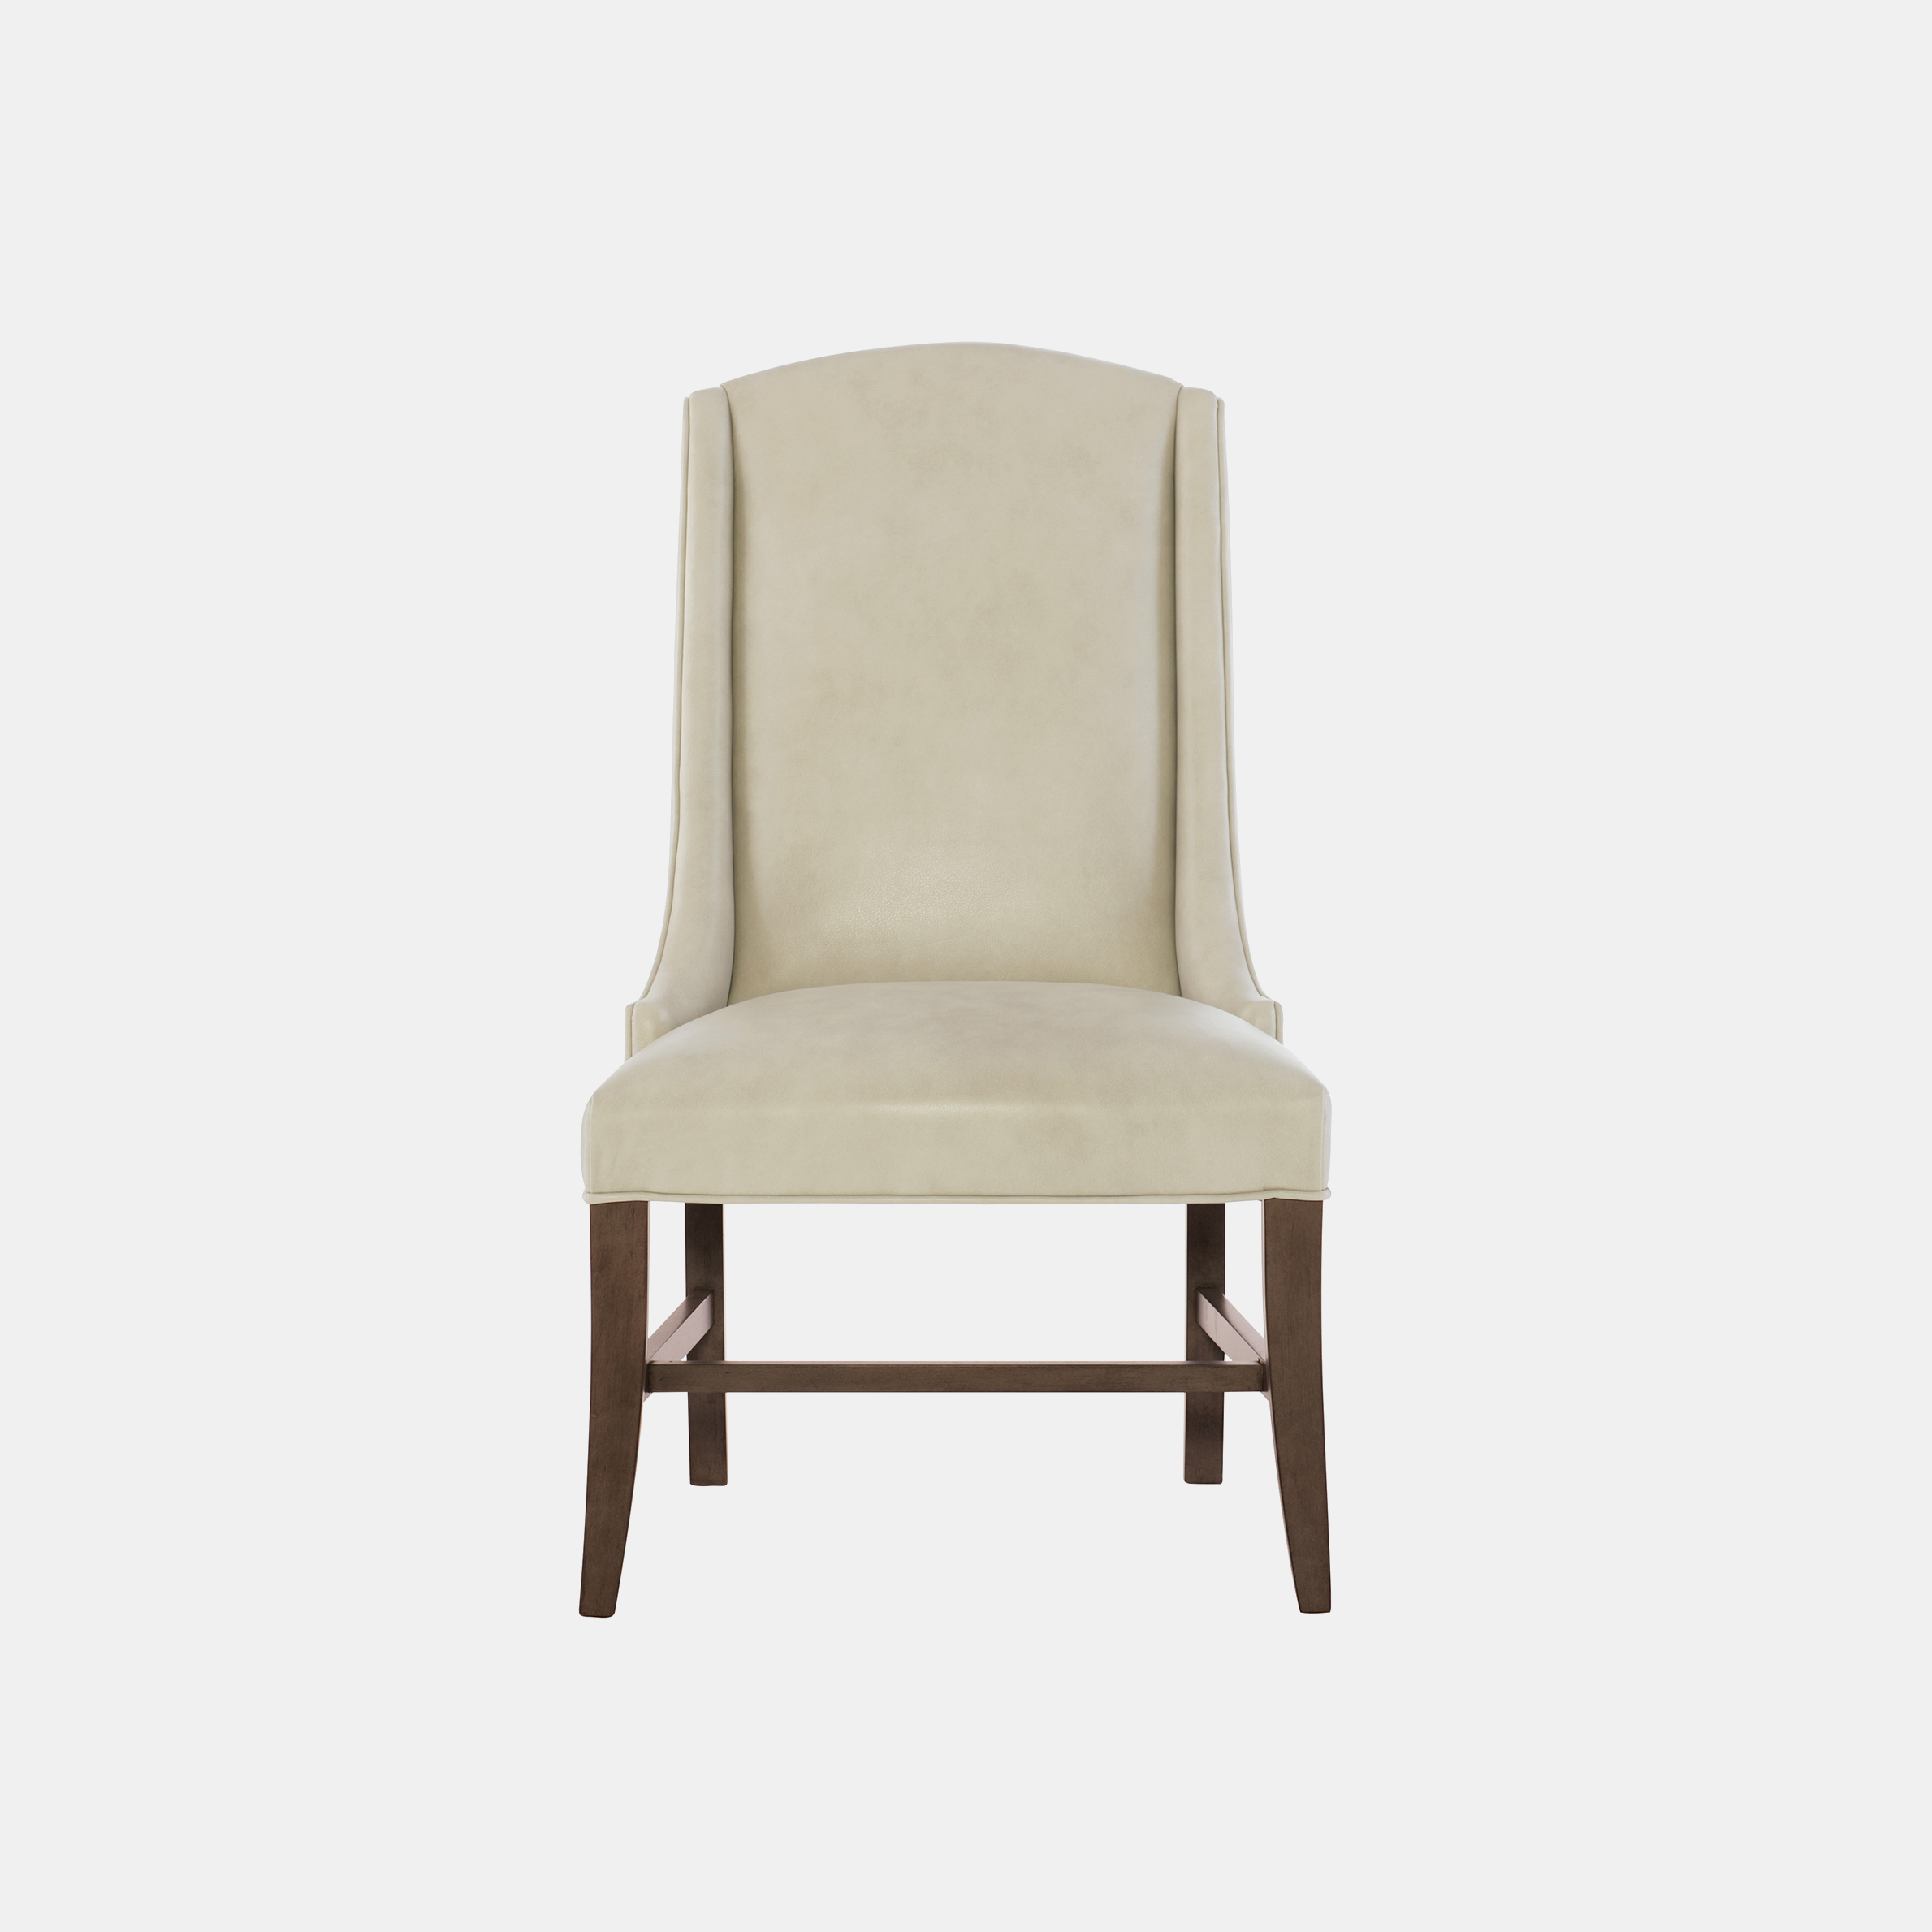 "Slope Leather Chair  24-1/2""w x 26""d x 42-1/4""h Legs available in cocoa (shown), chalk, and smoke. Available in fabric, leather, or COM. Also available as counter stool or bar stool. SKU0286BHT"